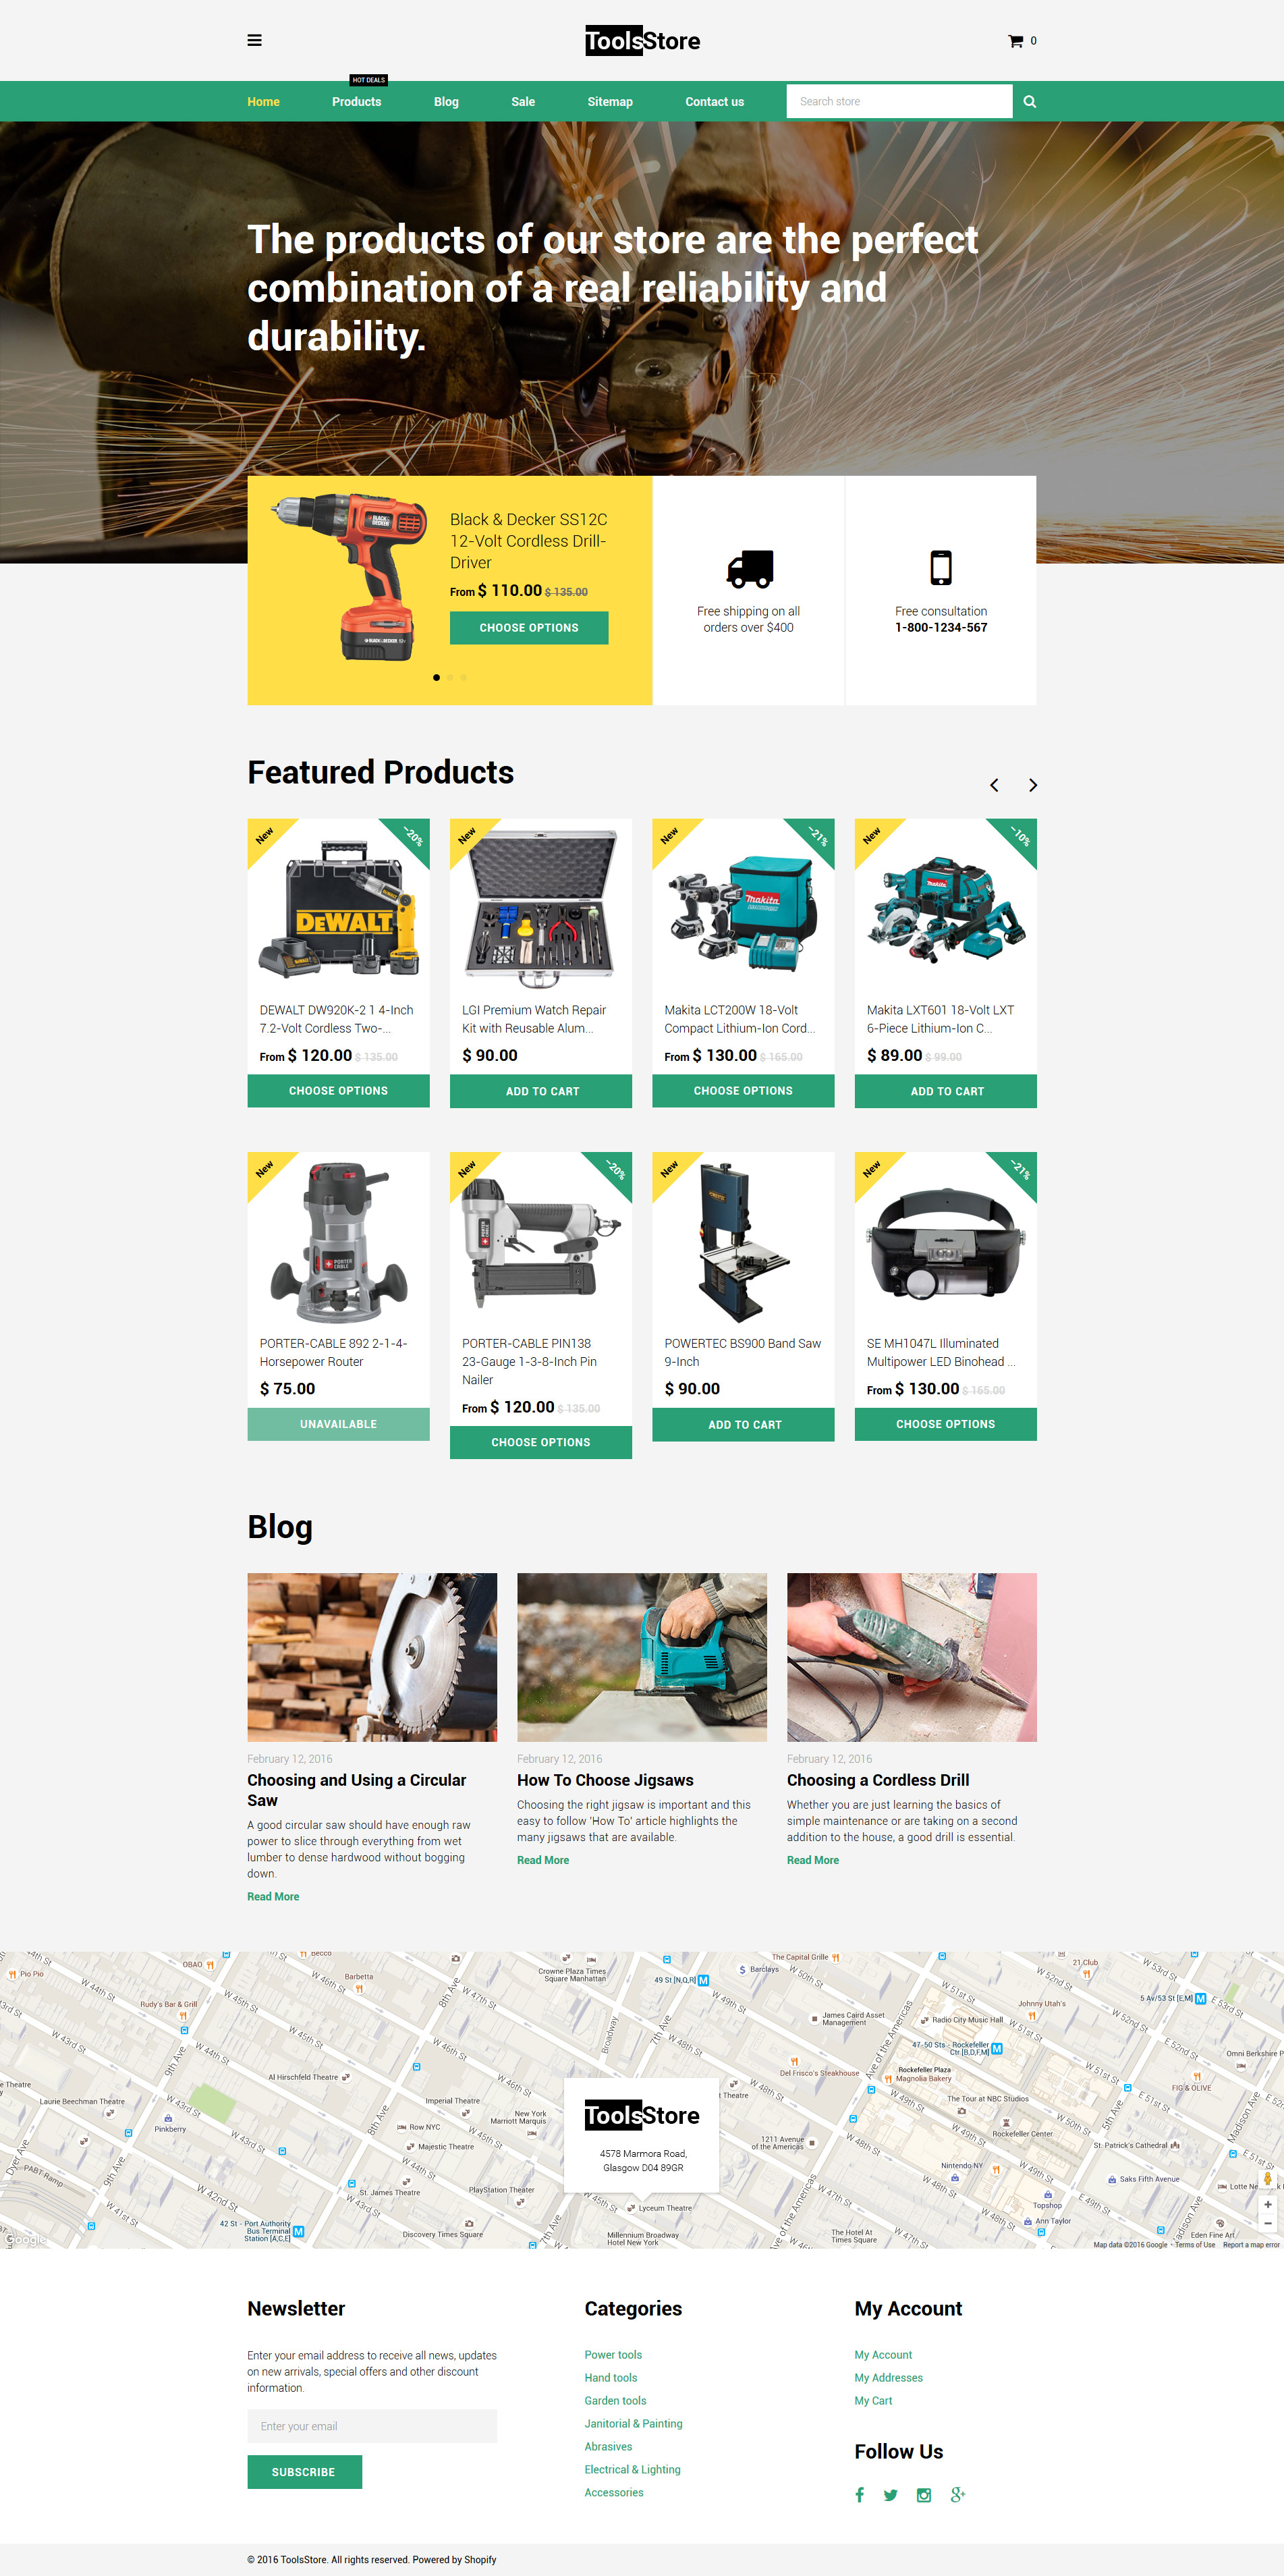 ToolsStore Shopify Theme - screenshot